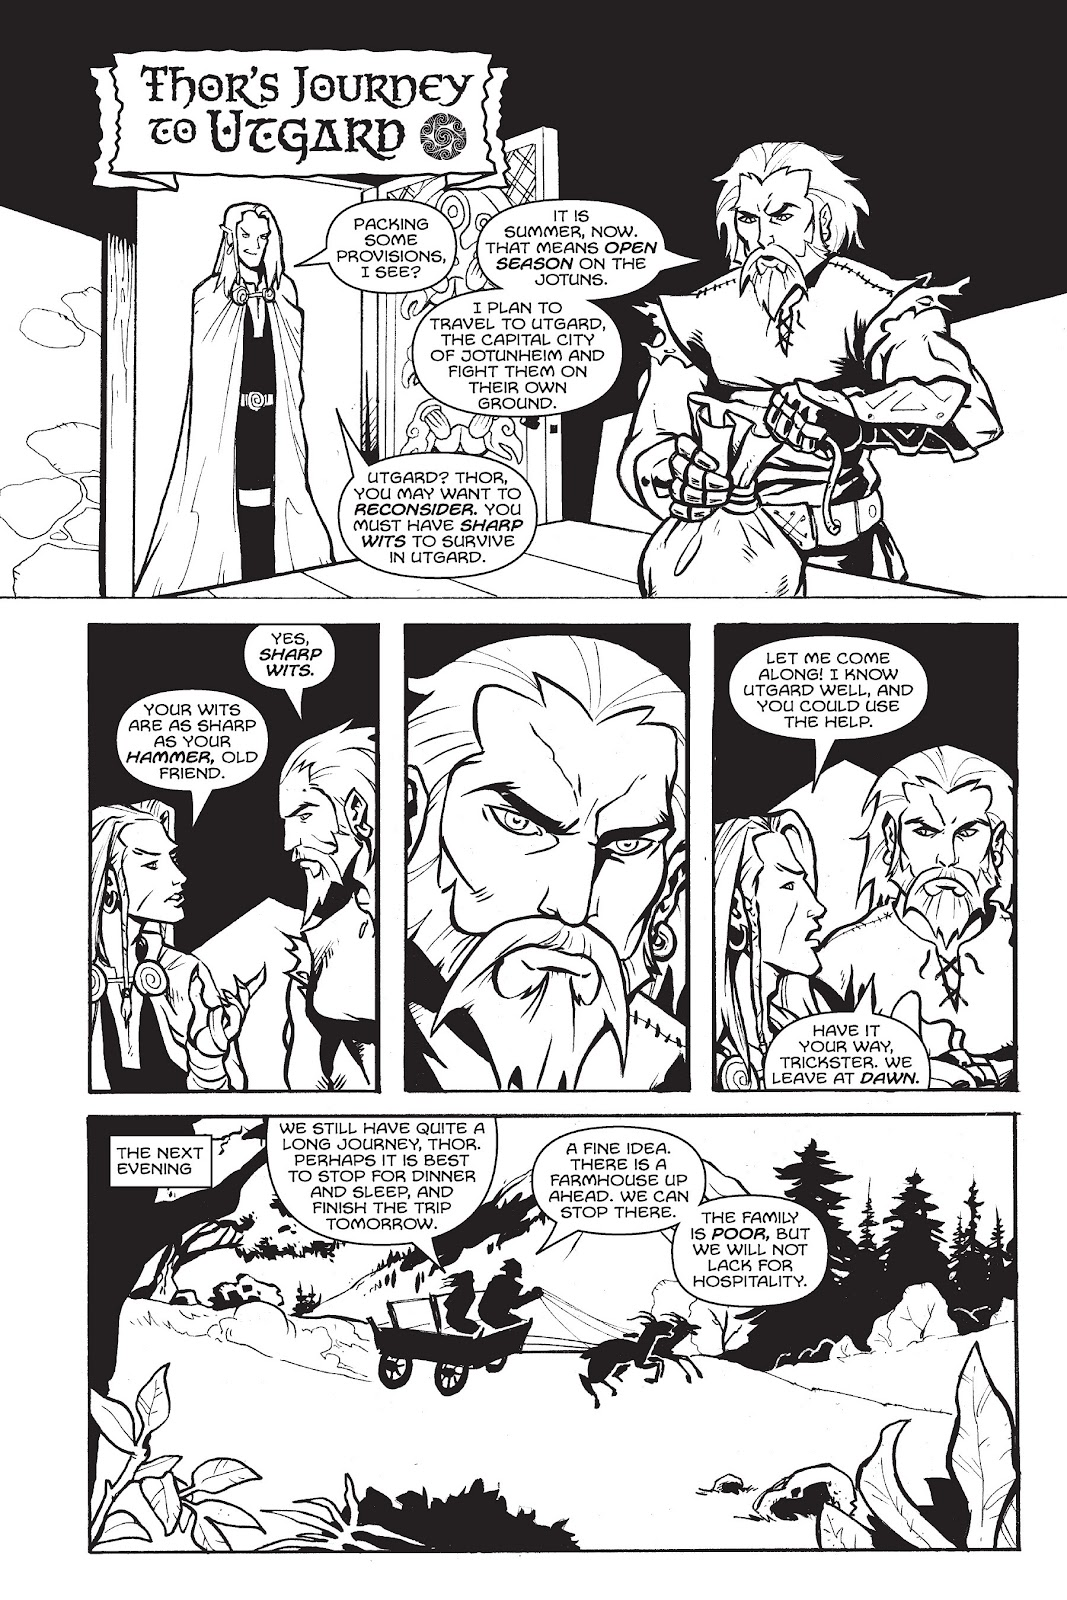 Read online Gods of Asgard comic -  Issue # TPB (Part 1) - 80